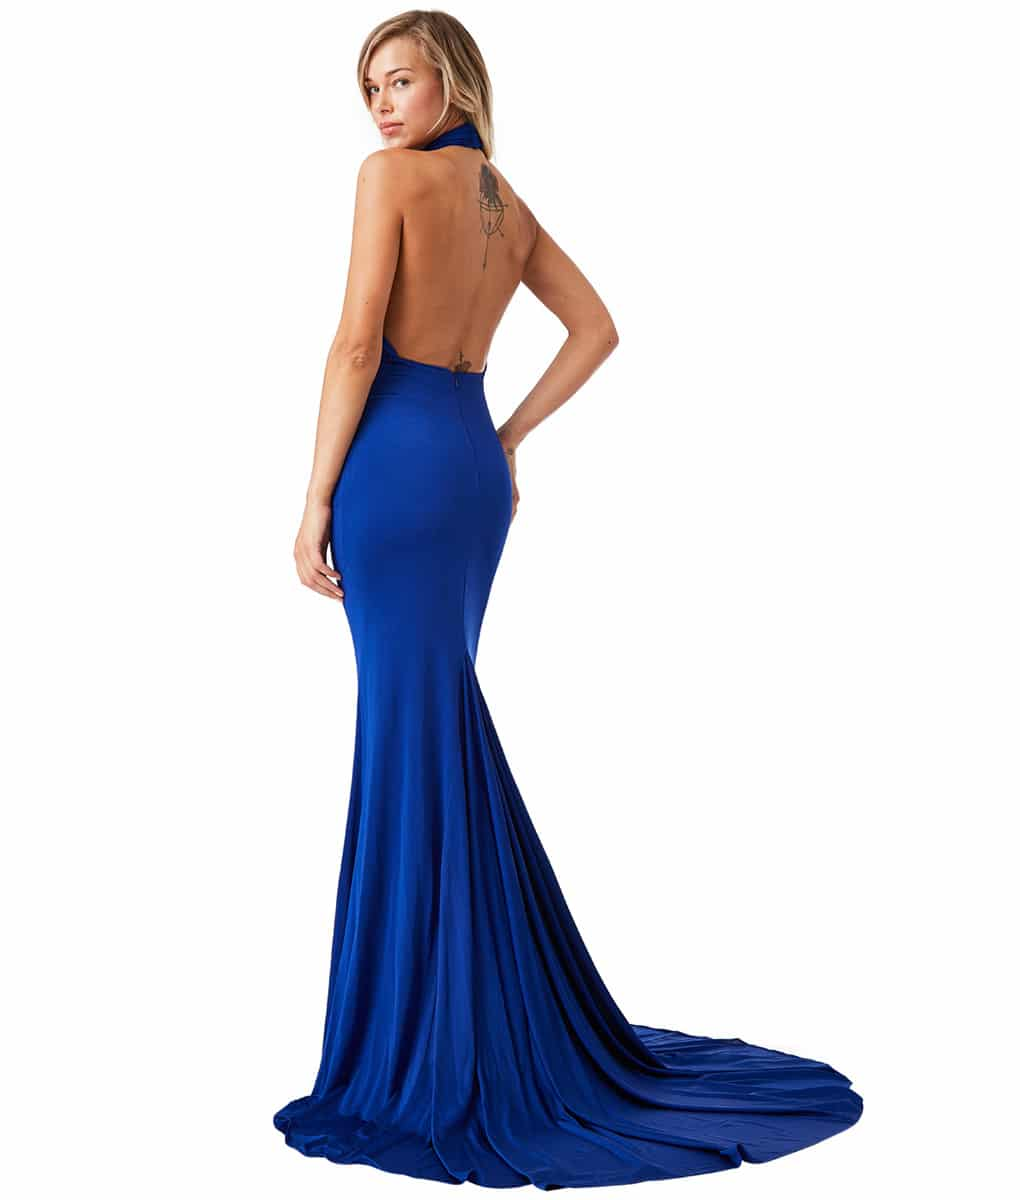 Alila-Royal-Blue-Backless-long-gown-City-Goddess-front